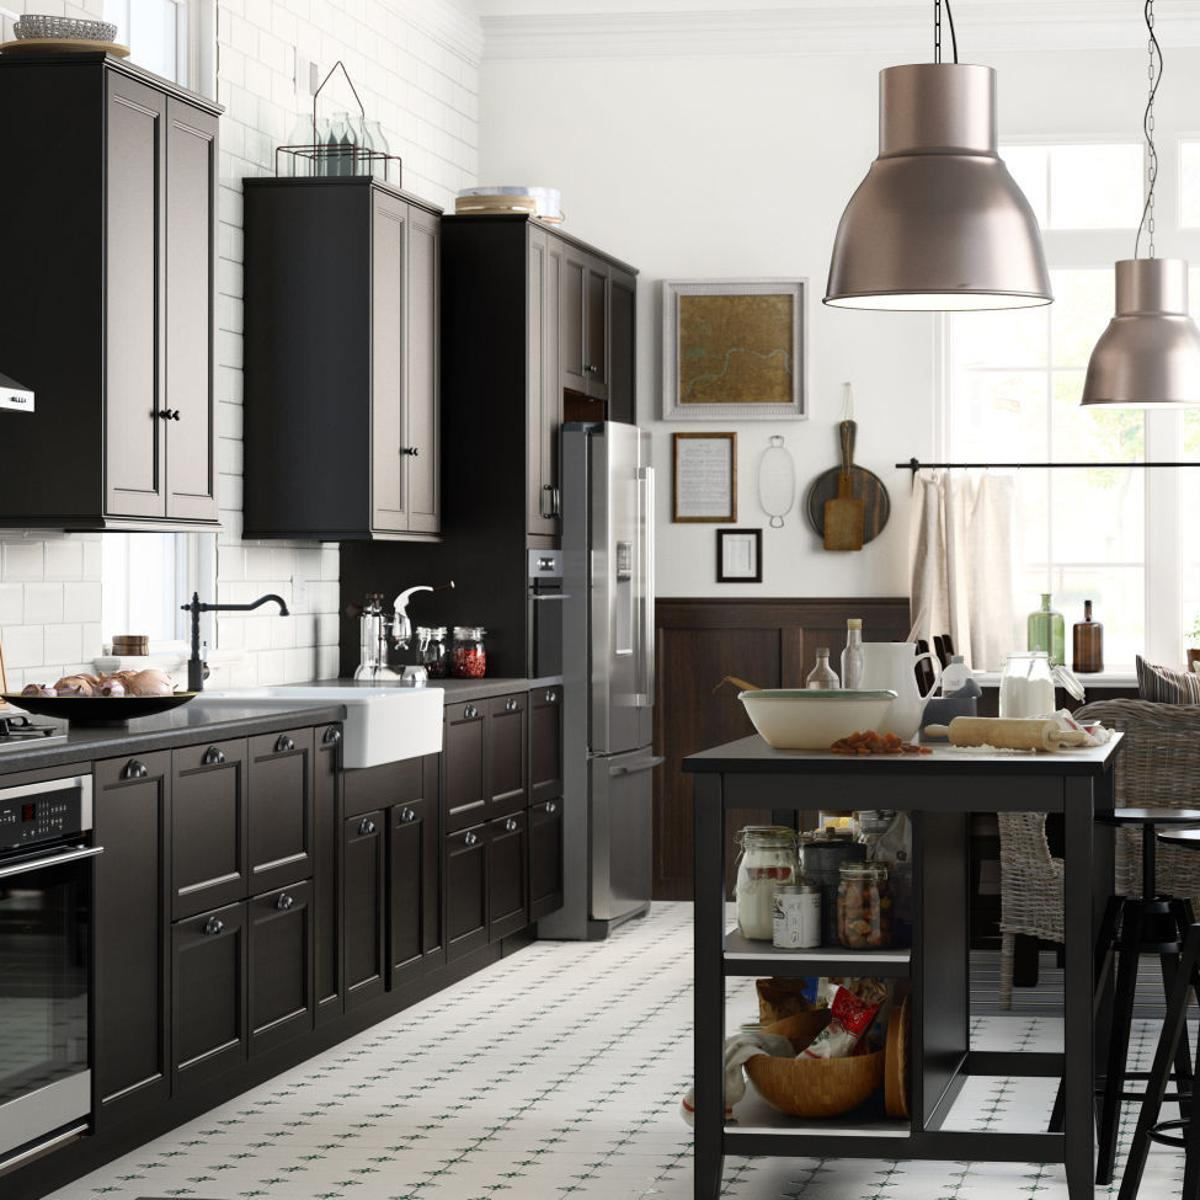 Basic Black Trend In Kitchen Decor Serves Up Style Home Garden Herald Review Com